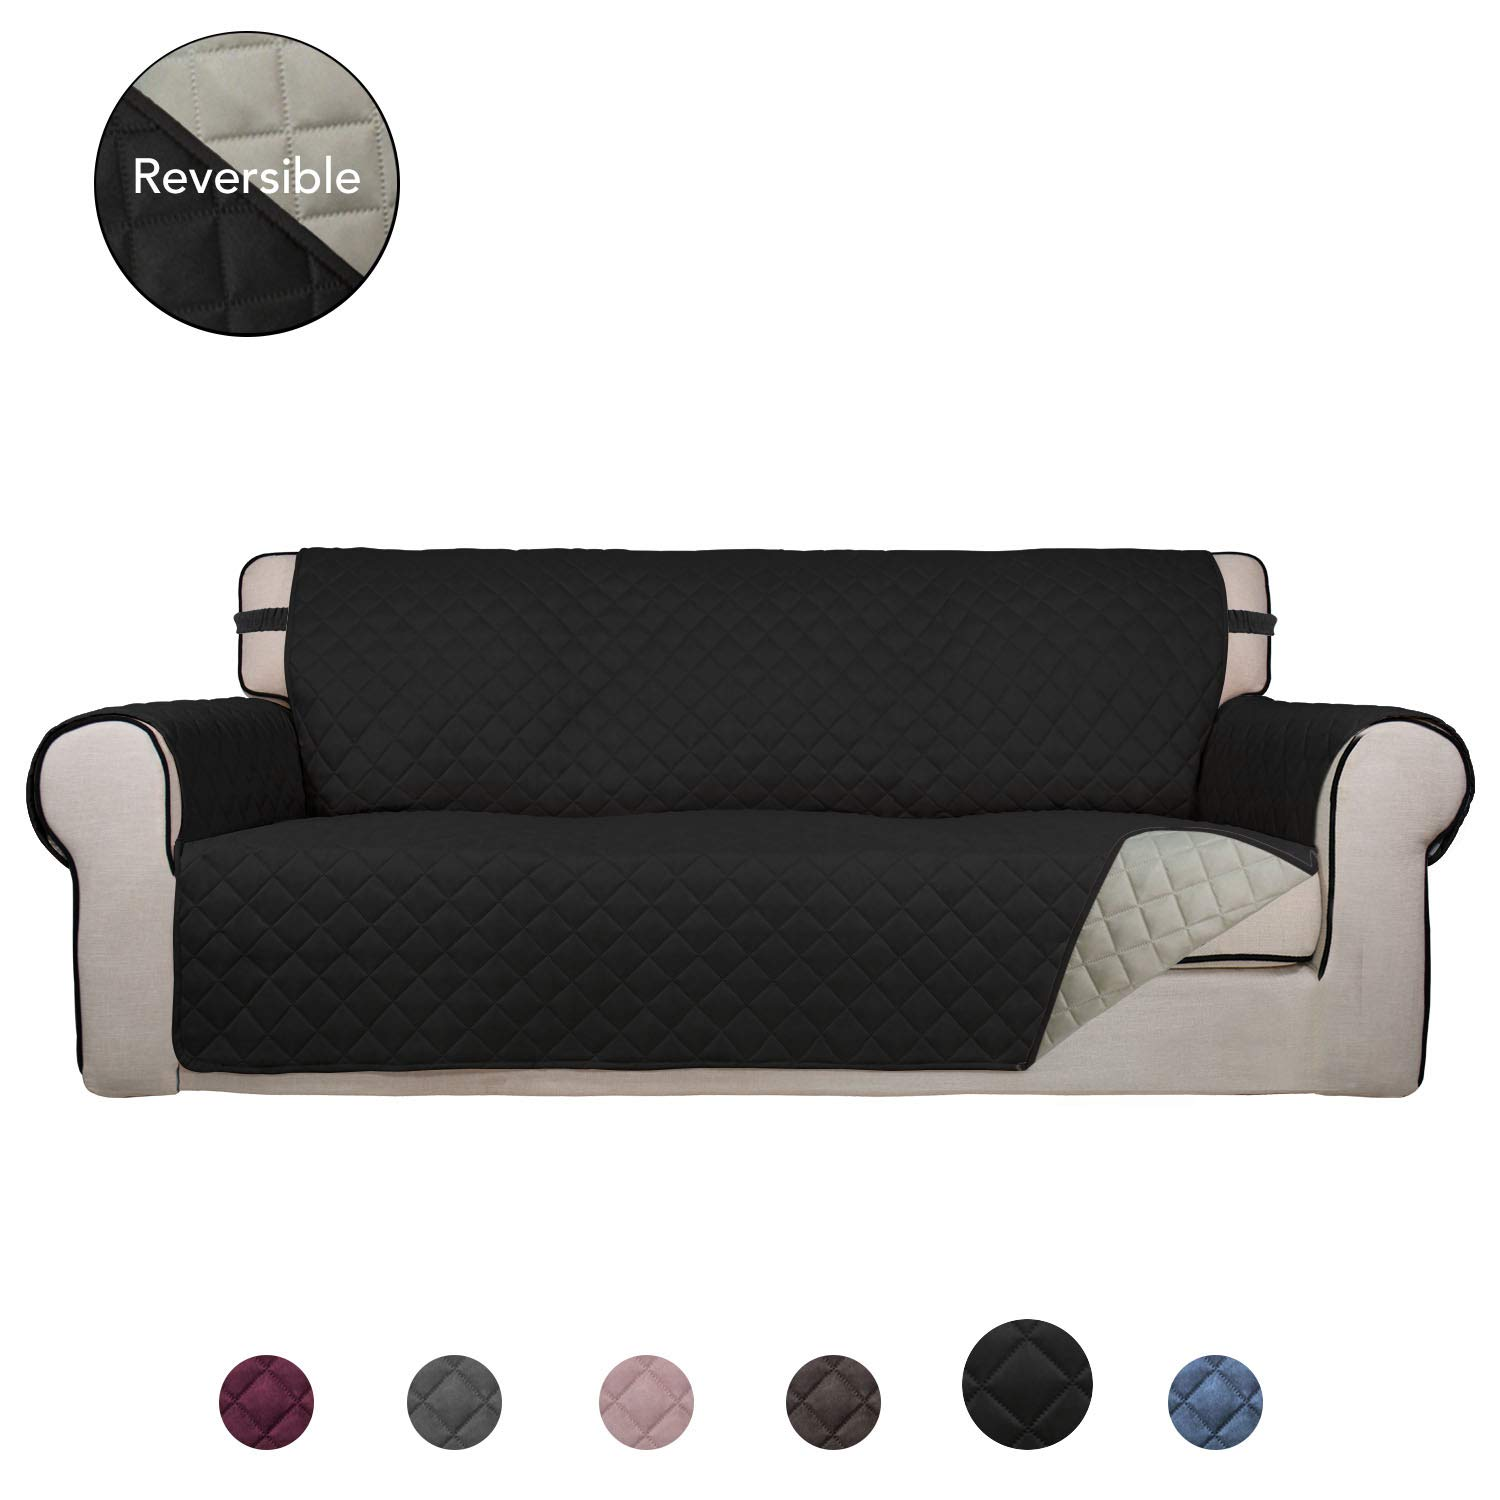 PureFit Reversible Quilted Sofa Cover, Water Resistant Slipcover Furniture Protector, Washable Couch Cover with Anti-Slip Foam and Elastic Straps for Kids, Dogs, Pets (Oversized Sofa, Black/Beige)